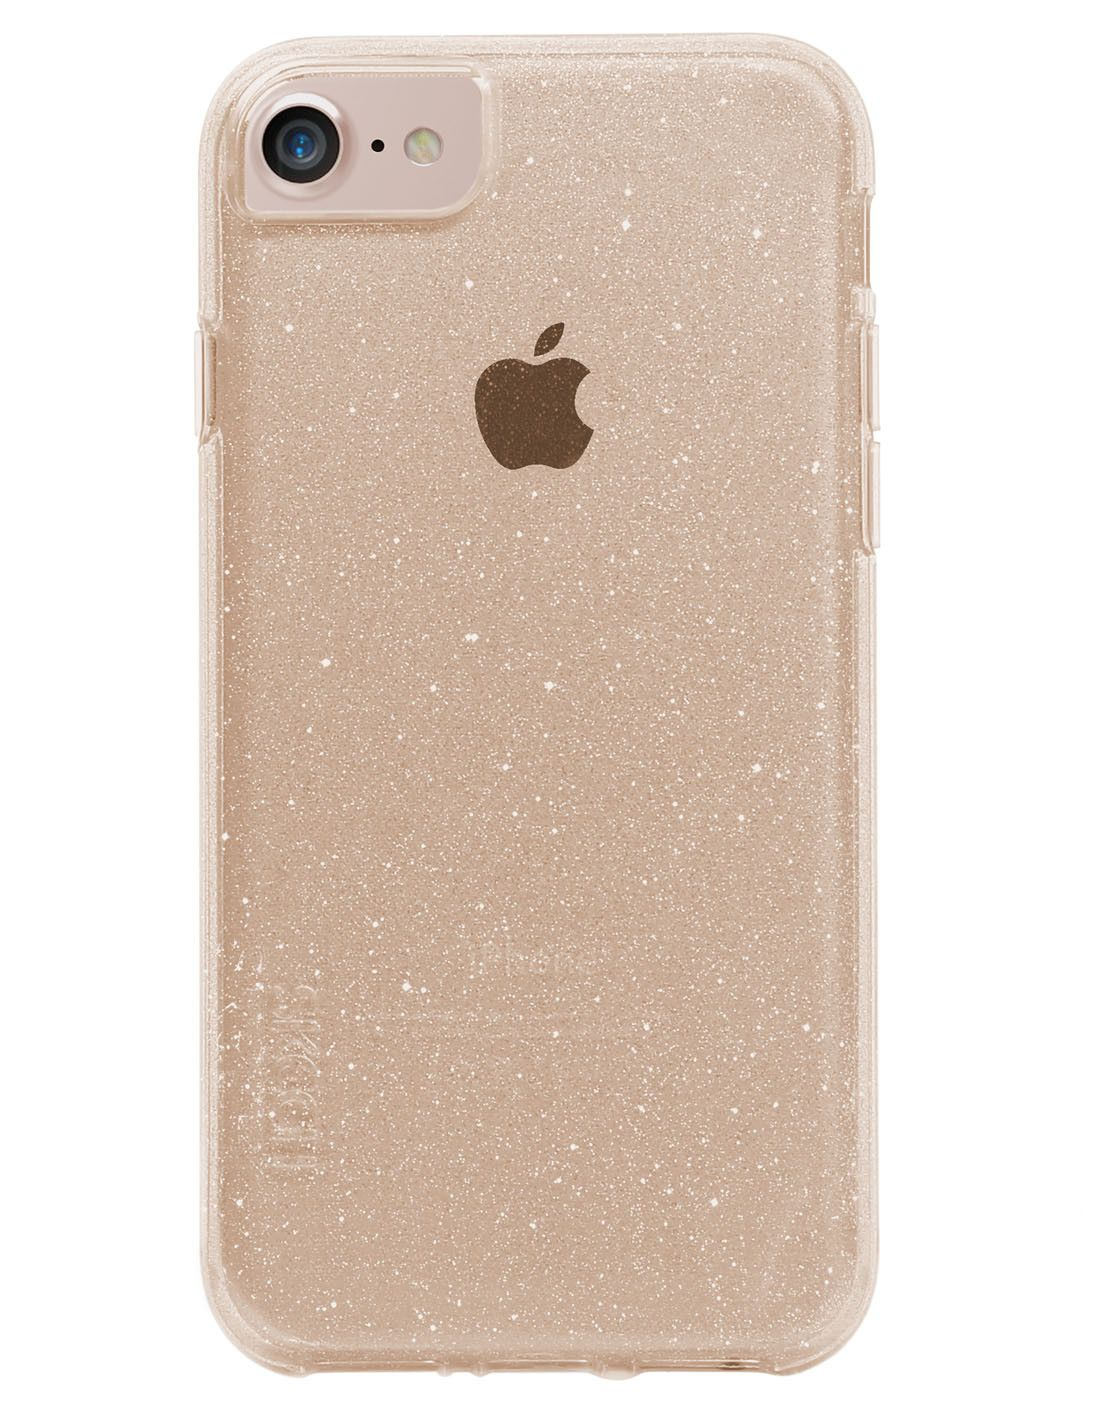 free shipping a18c3 08286 Skech Matrix Sparkle for iPhone 7/6S Features: Ultra tough, slim fit ...